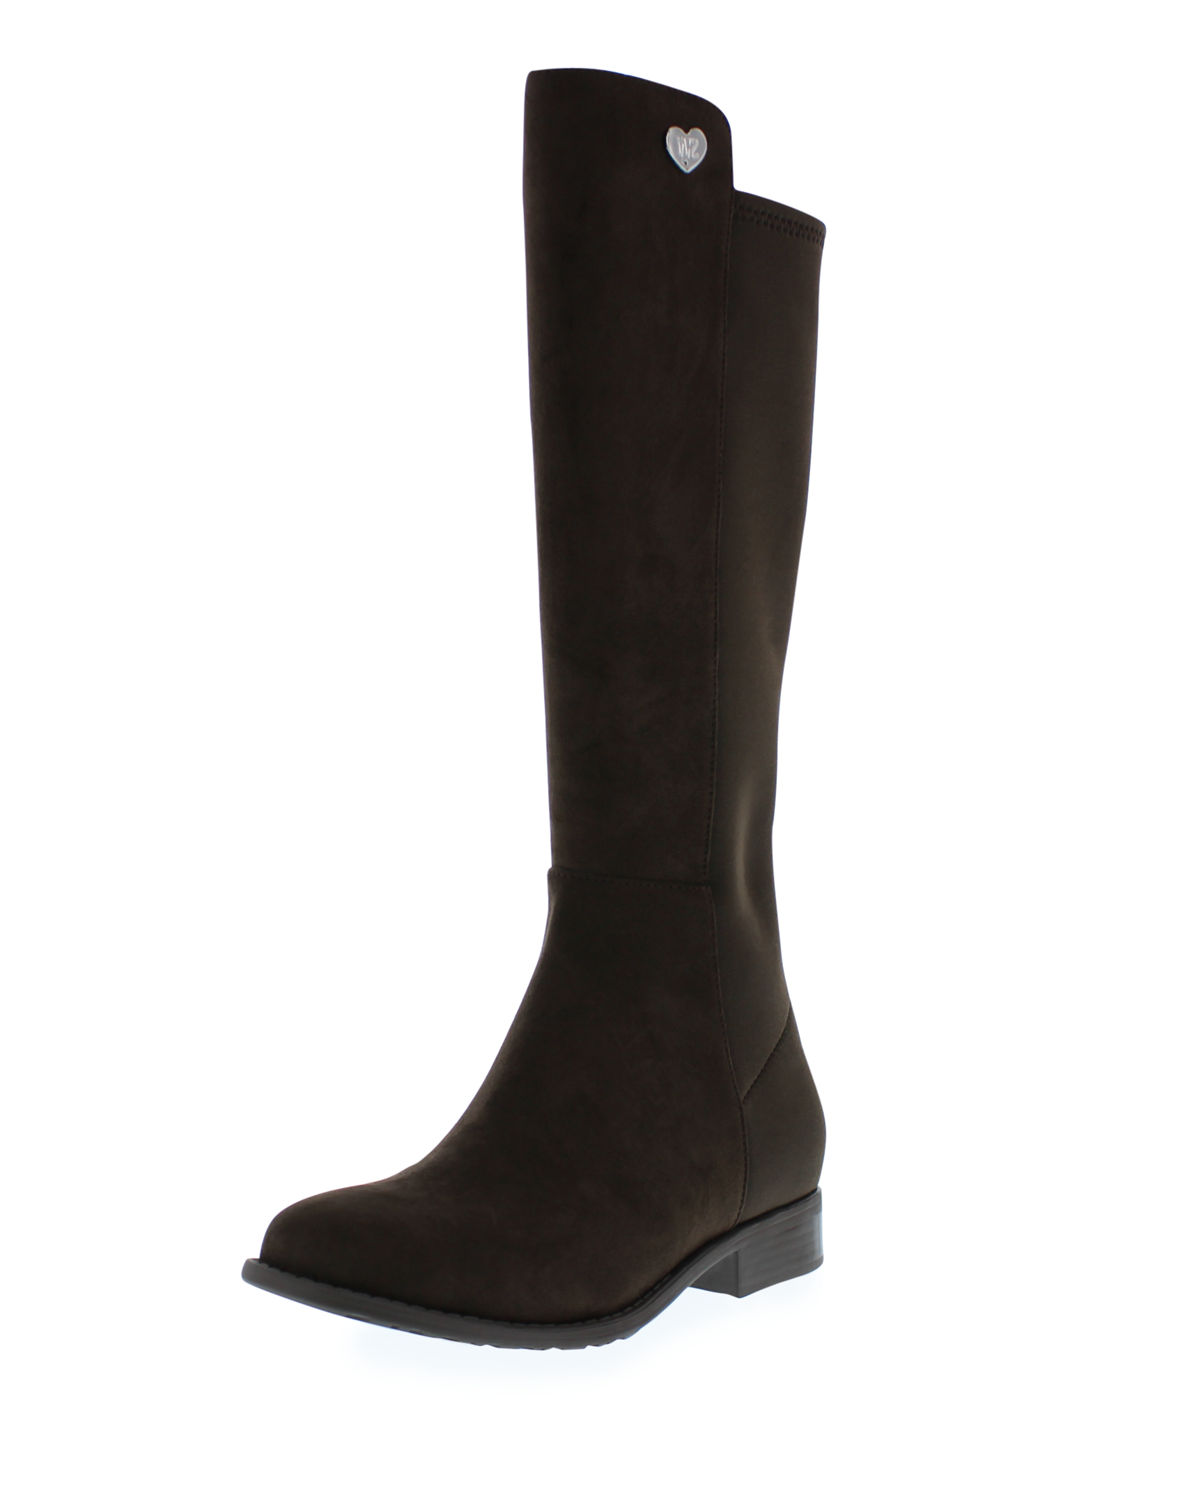 50/50 Riding Boot, Toddler/Youth